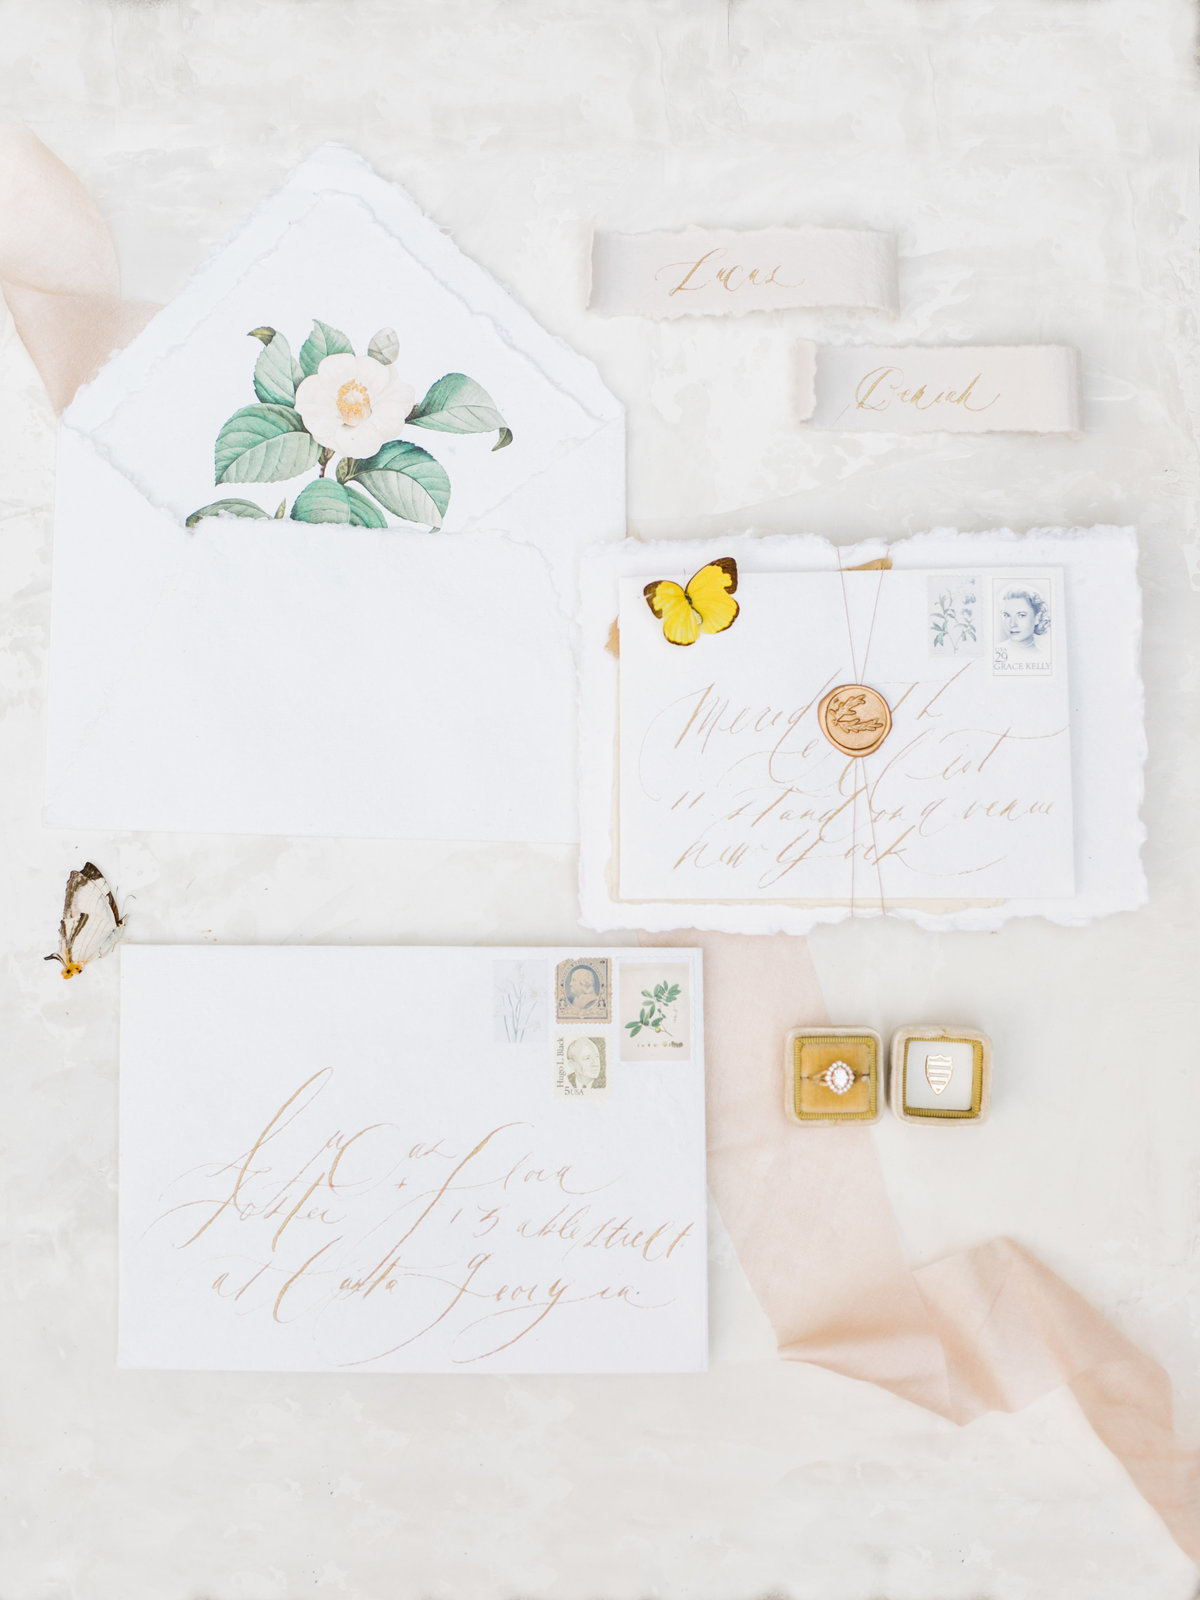 Raela is a Nashville wedding planner with a heart for intentional wedding design.